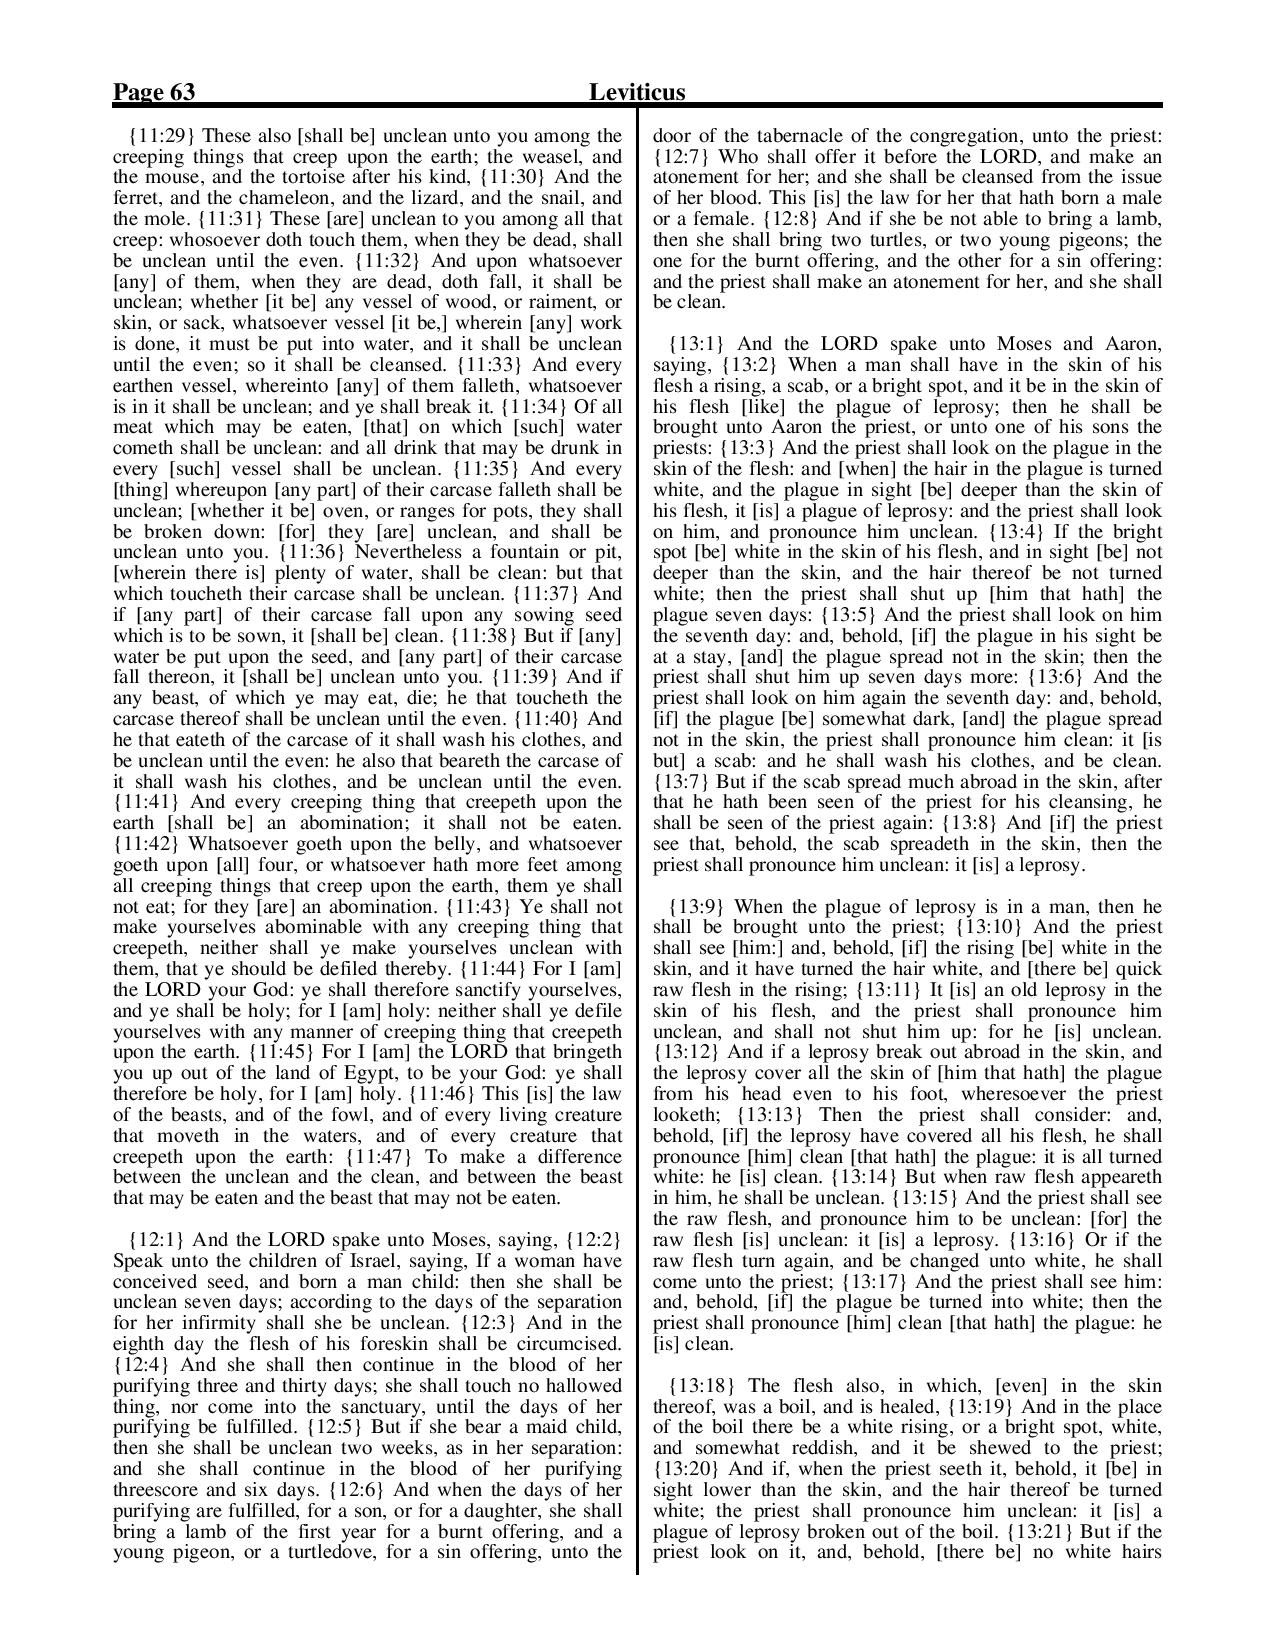 King-James-Bible-KJV-Bible-PDF-page-084